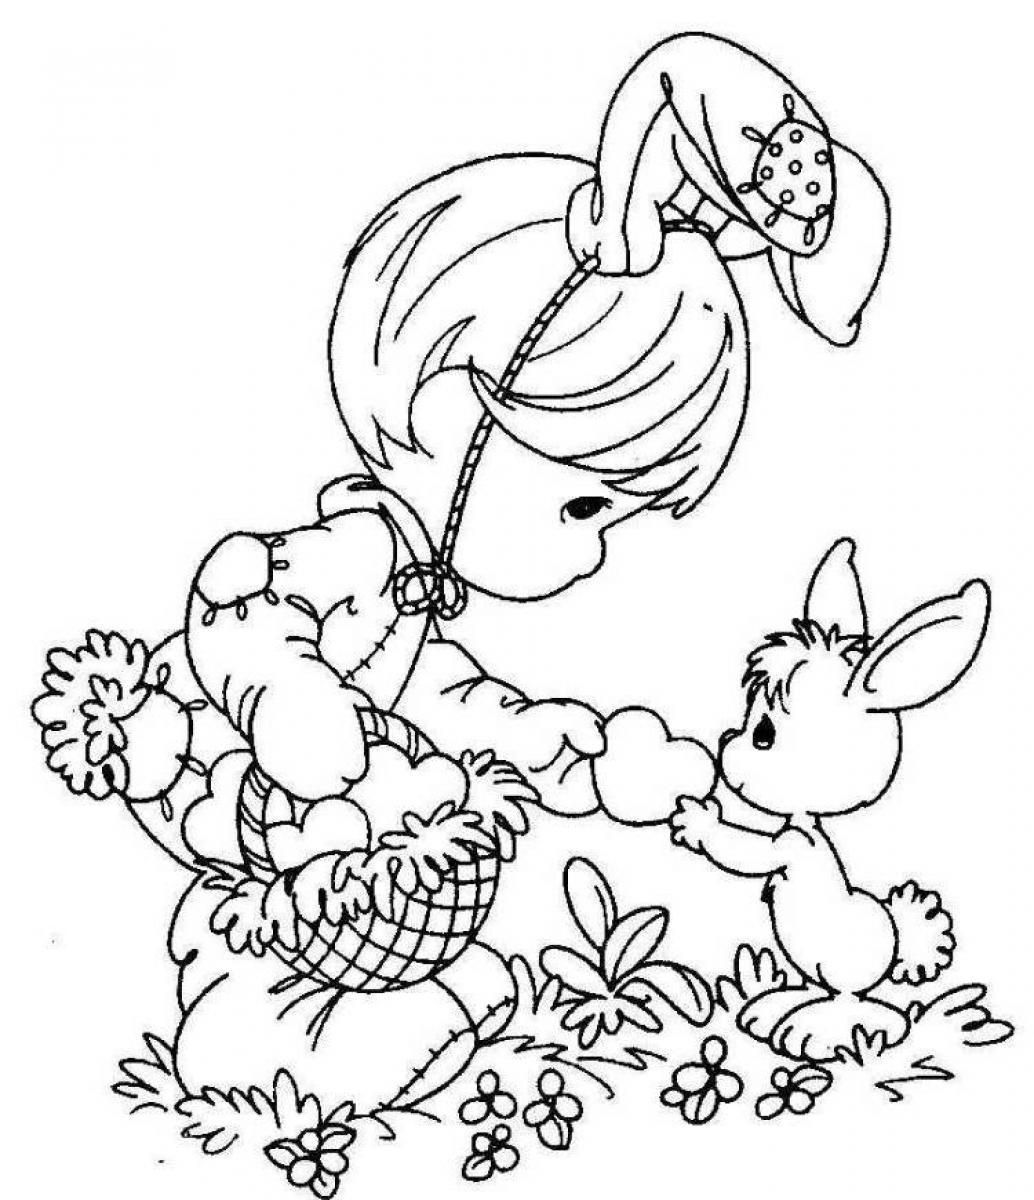 Free Easter Coloring Pages For Girls Becoloring Com Paginas Para Colorir Flores Para Colorir Paginas Para Colorir Para Adultos